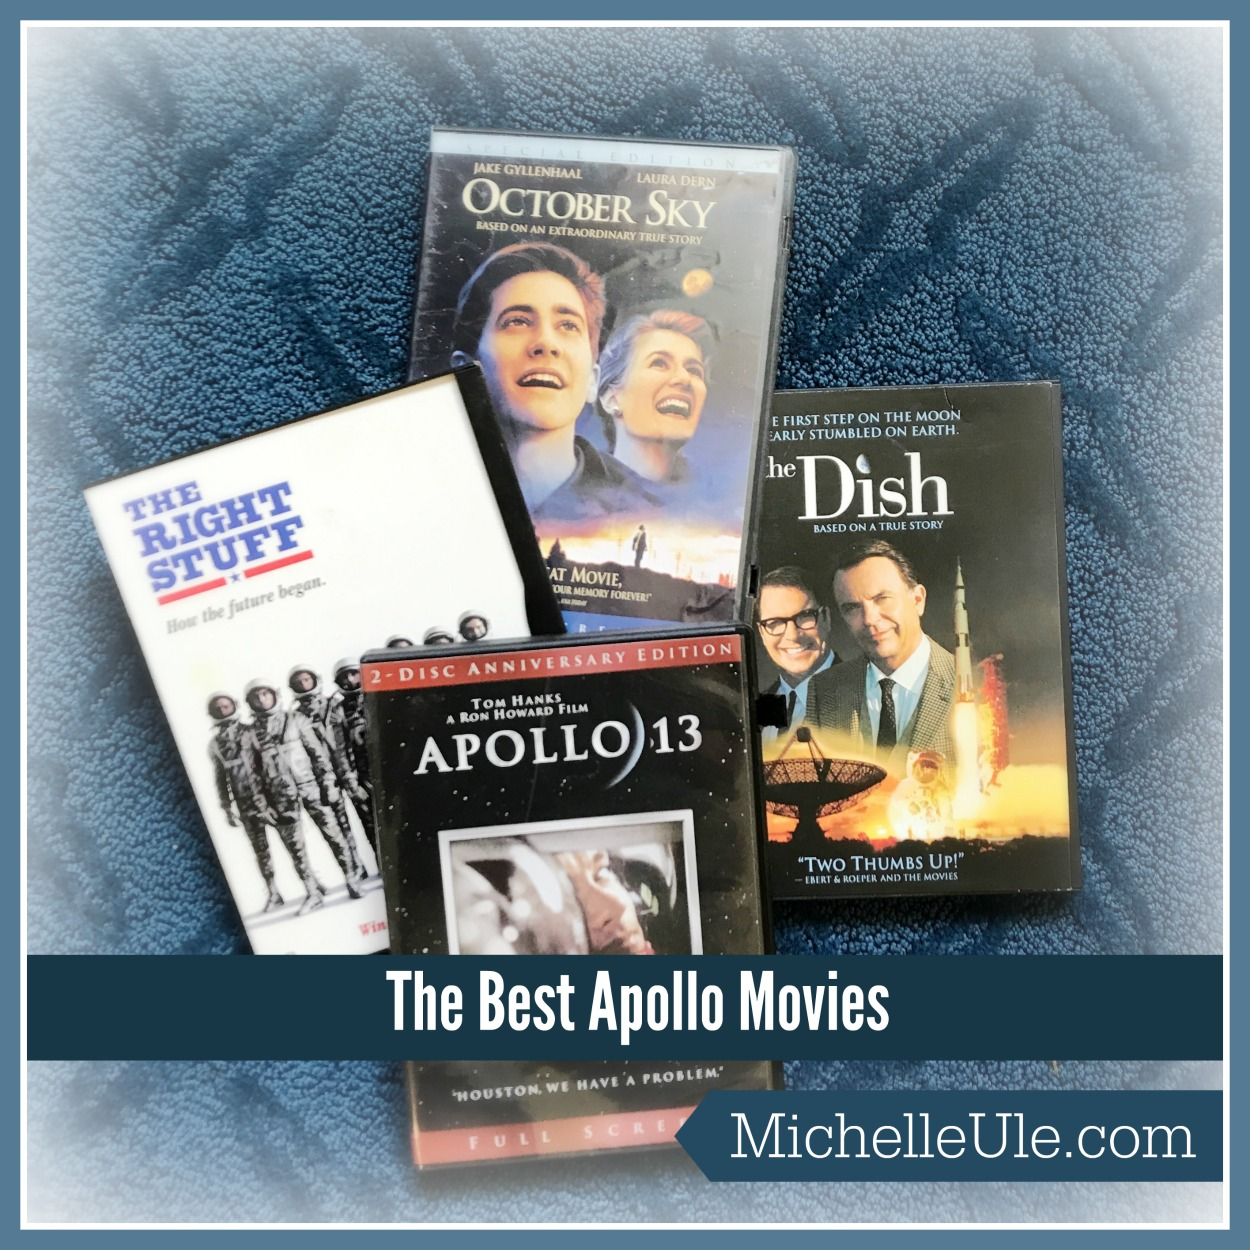 The Best Apollo Movies | Michelle Ule, Author